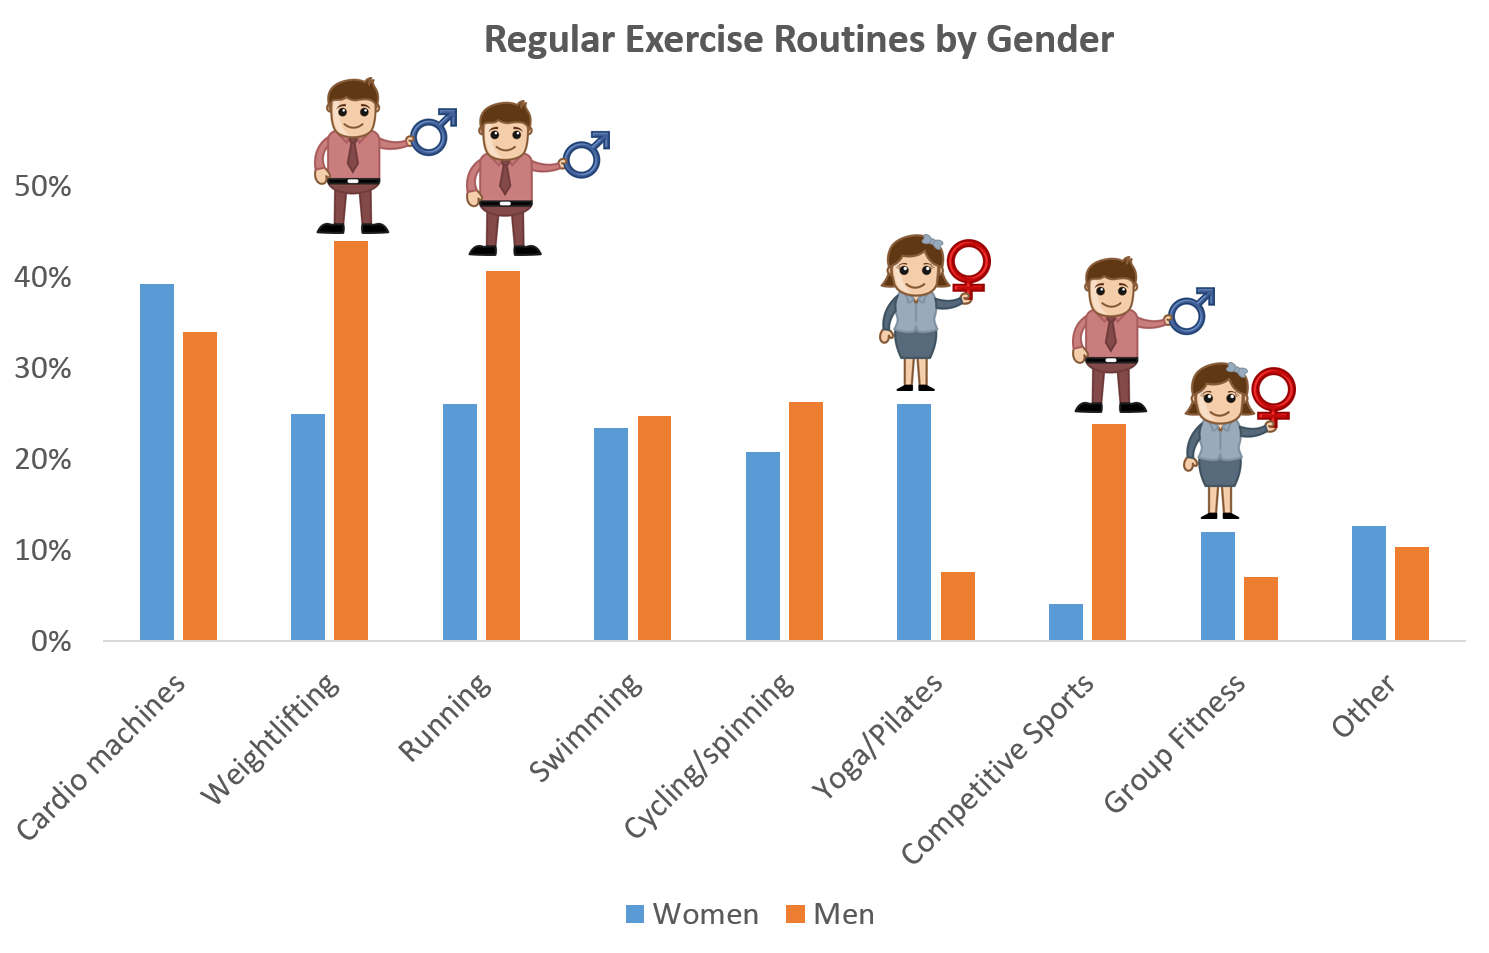 A Tale of Two Genders: U.S. Exercise Trends Based on Flyte Fitness Study